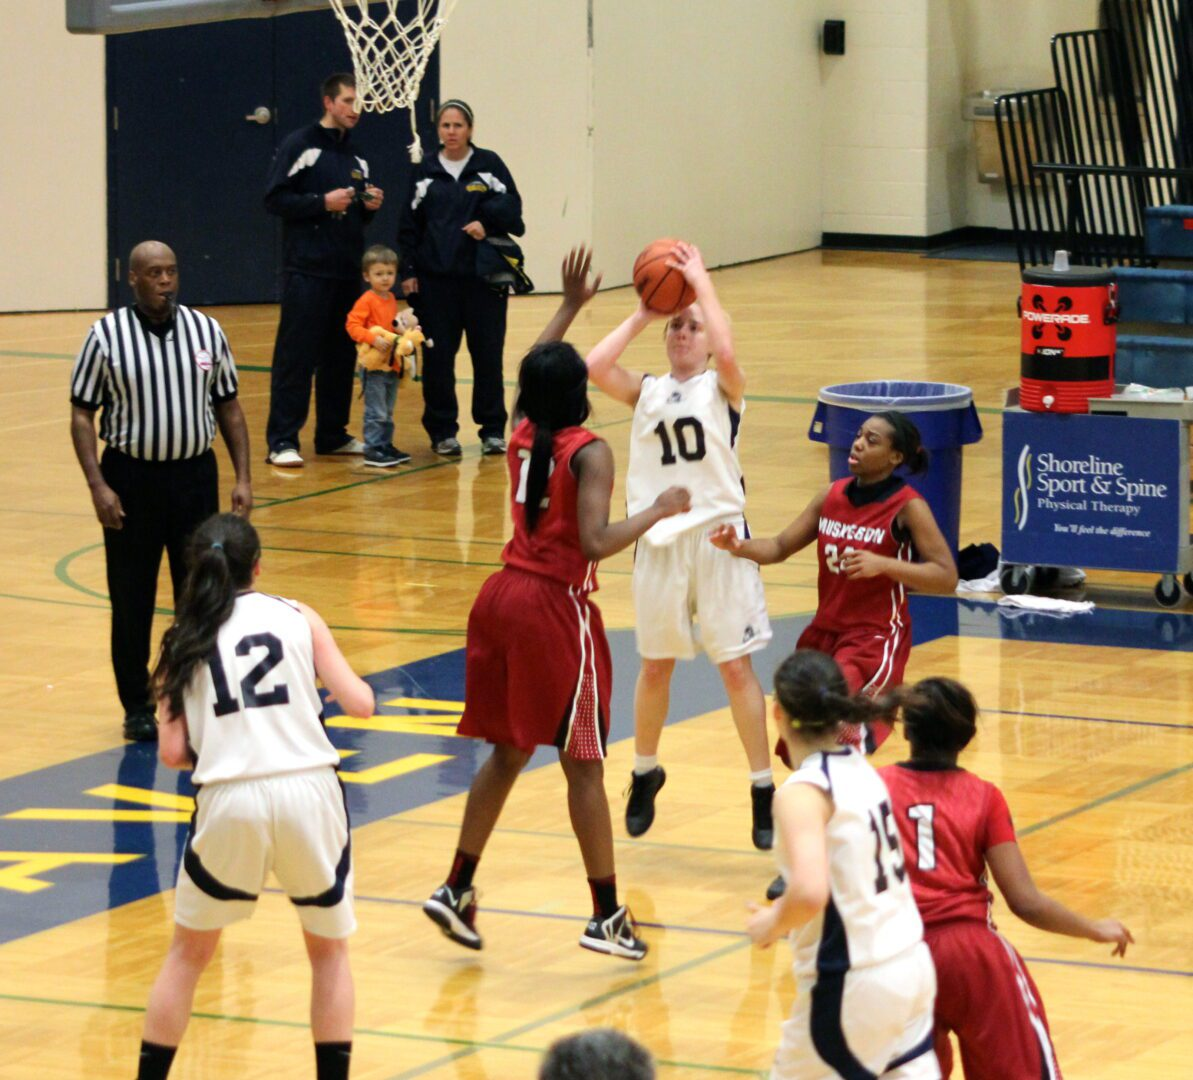 Muskegon cruises to 21-point win over Fruitport at district opener